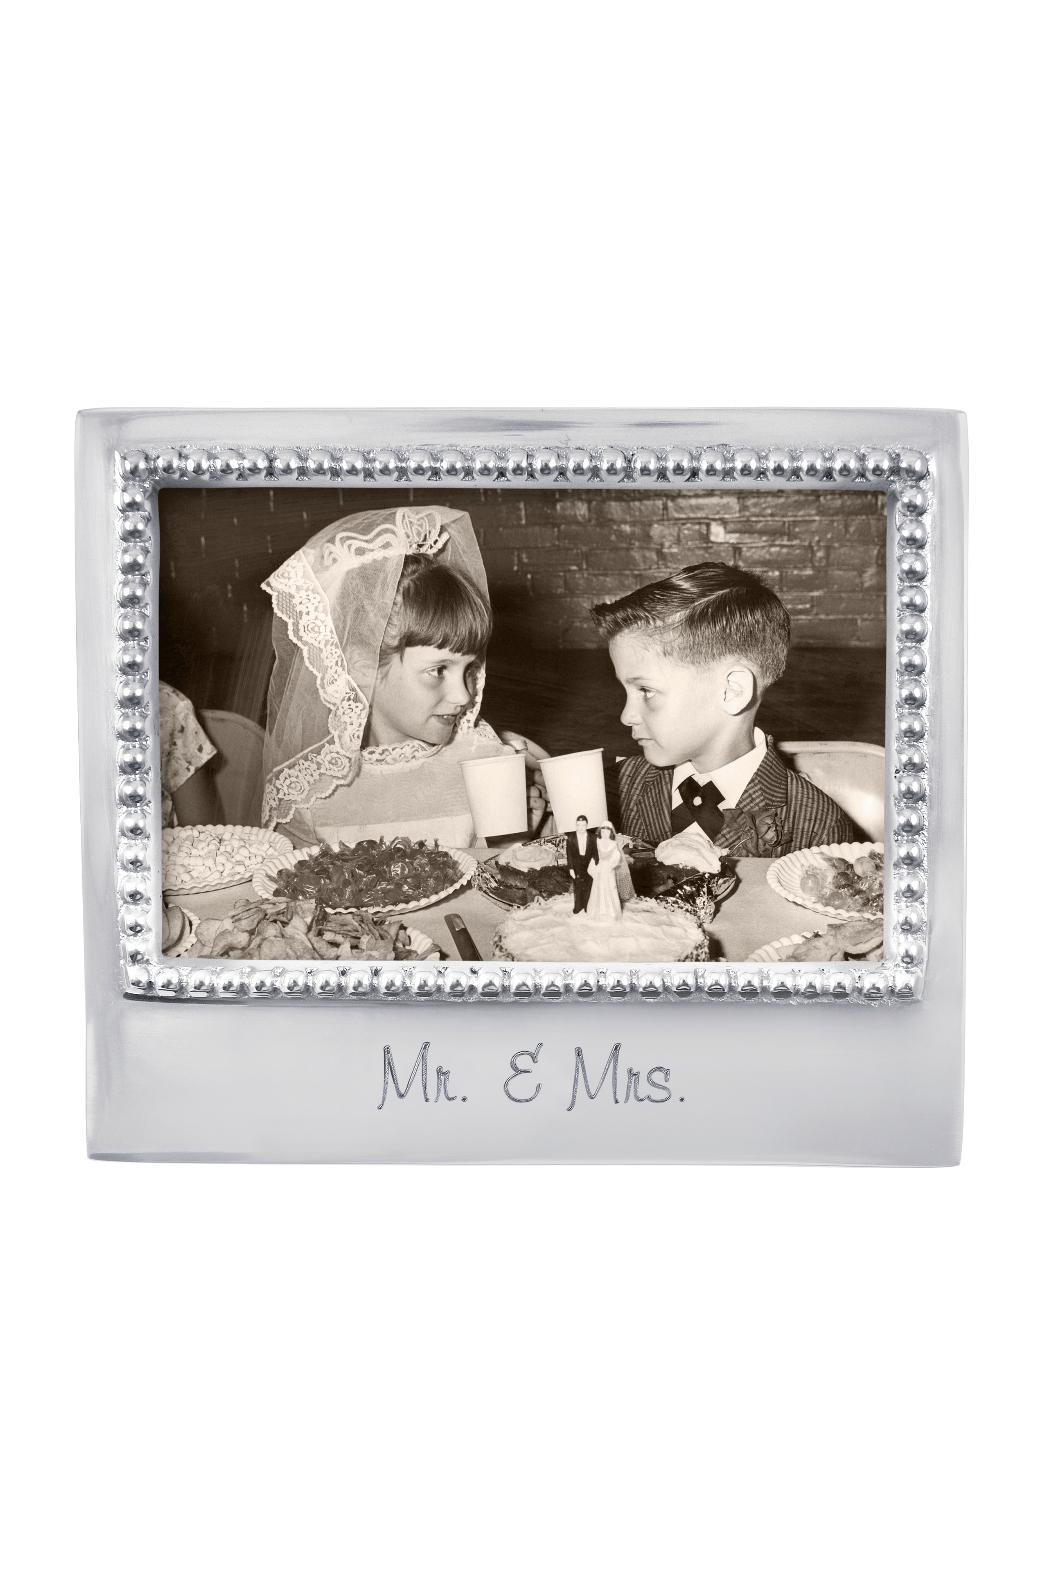 mariposa mr mrs frame front cropped image - Mr And Mrs Frame